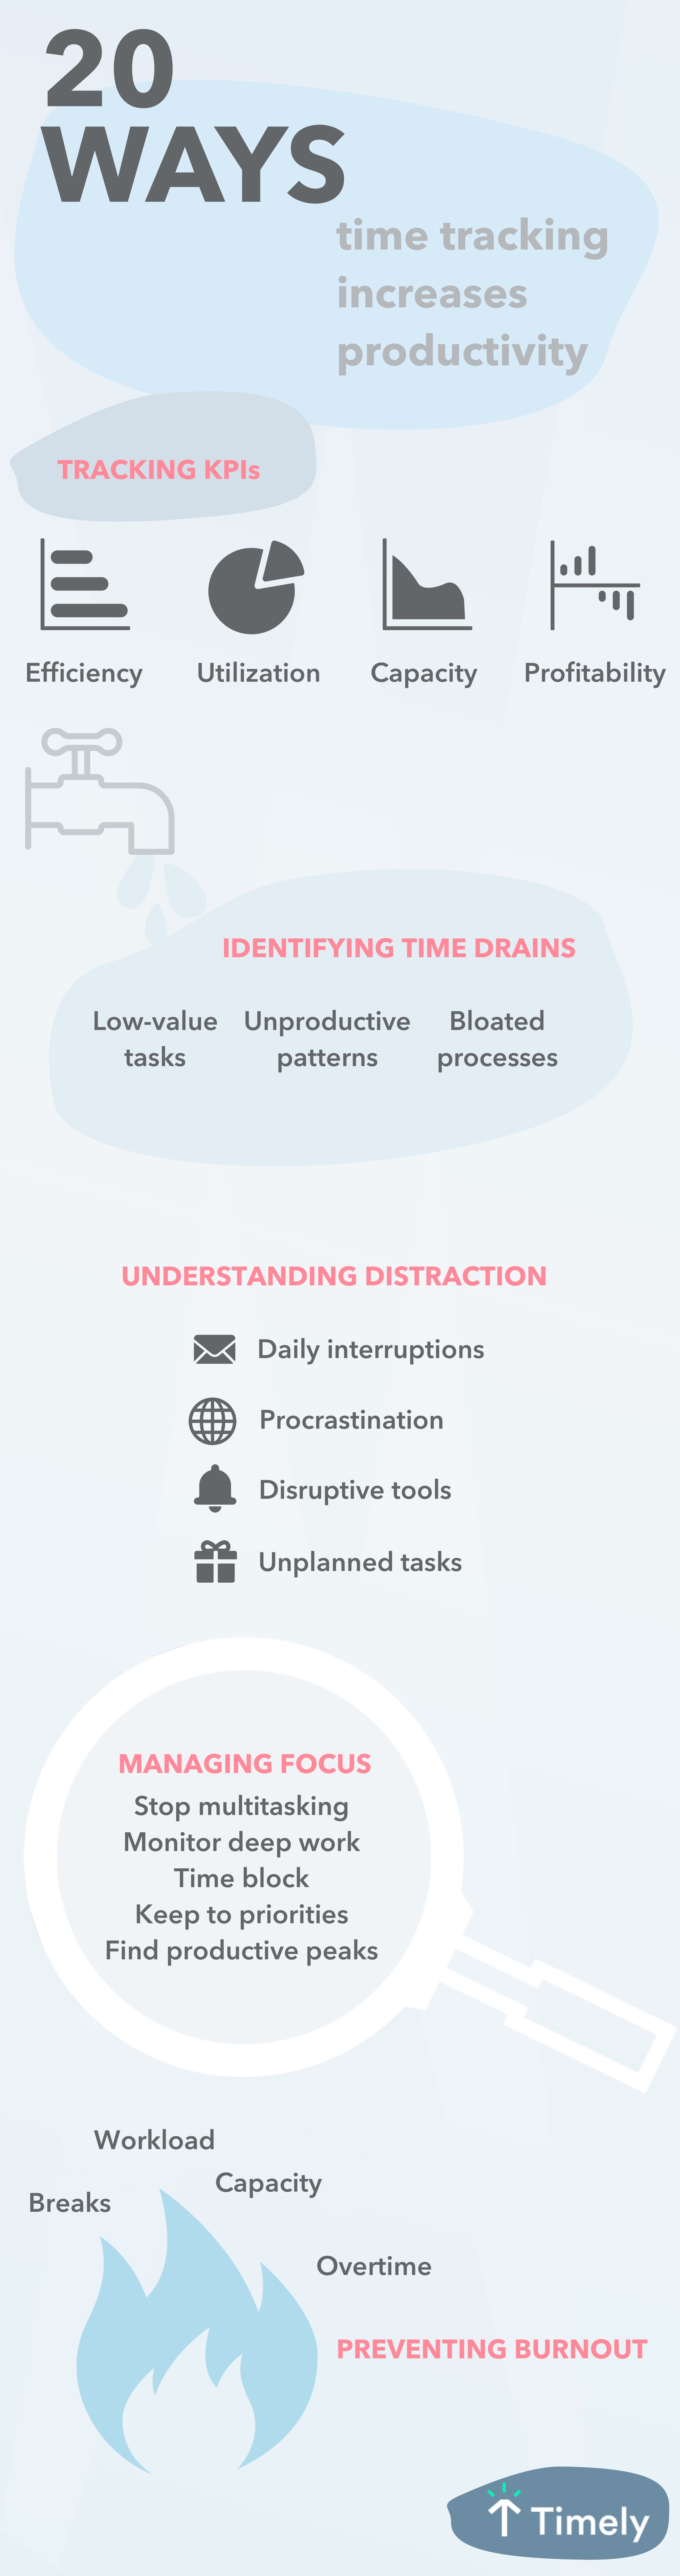 time-tracking-increases-productivity@2x